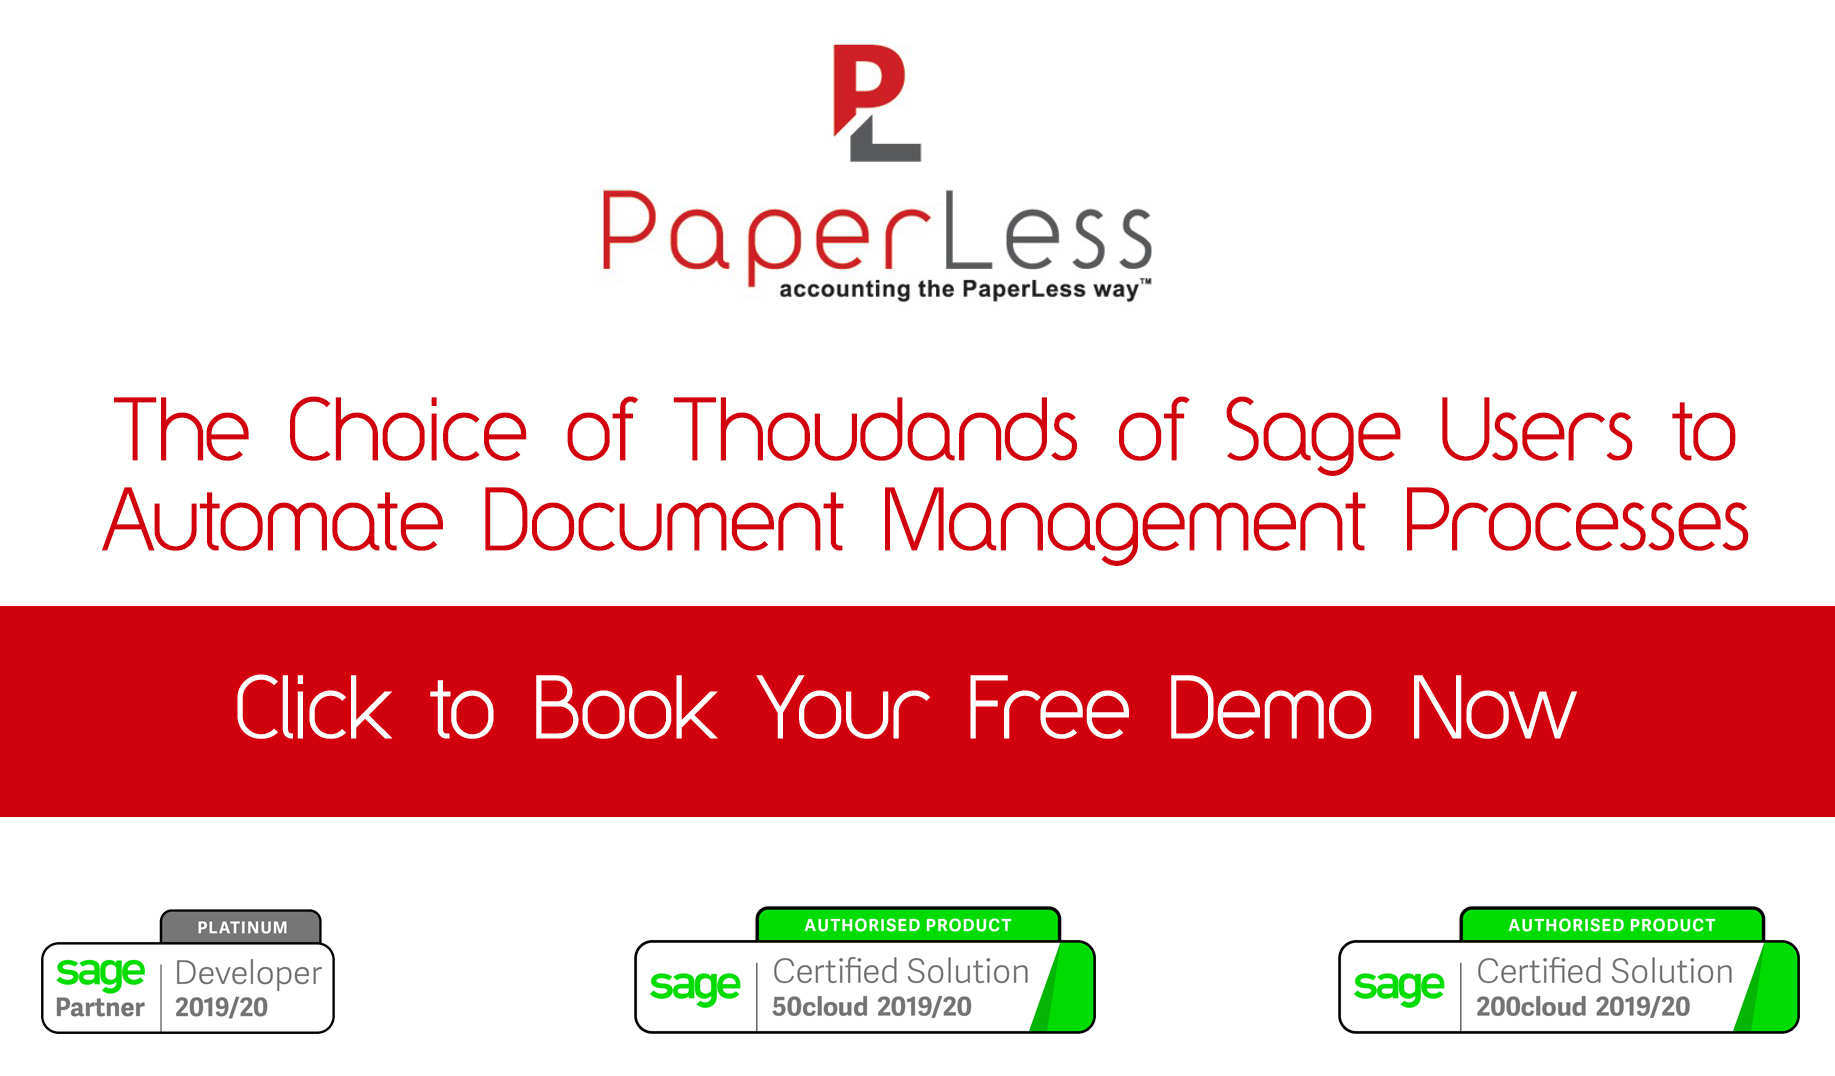 Click to Subscribe Now to the Free Online Demo of PaperLess OCR